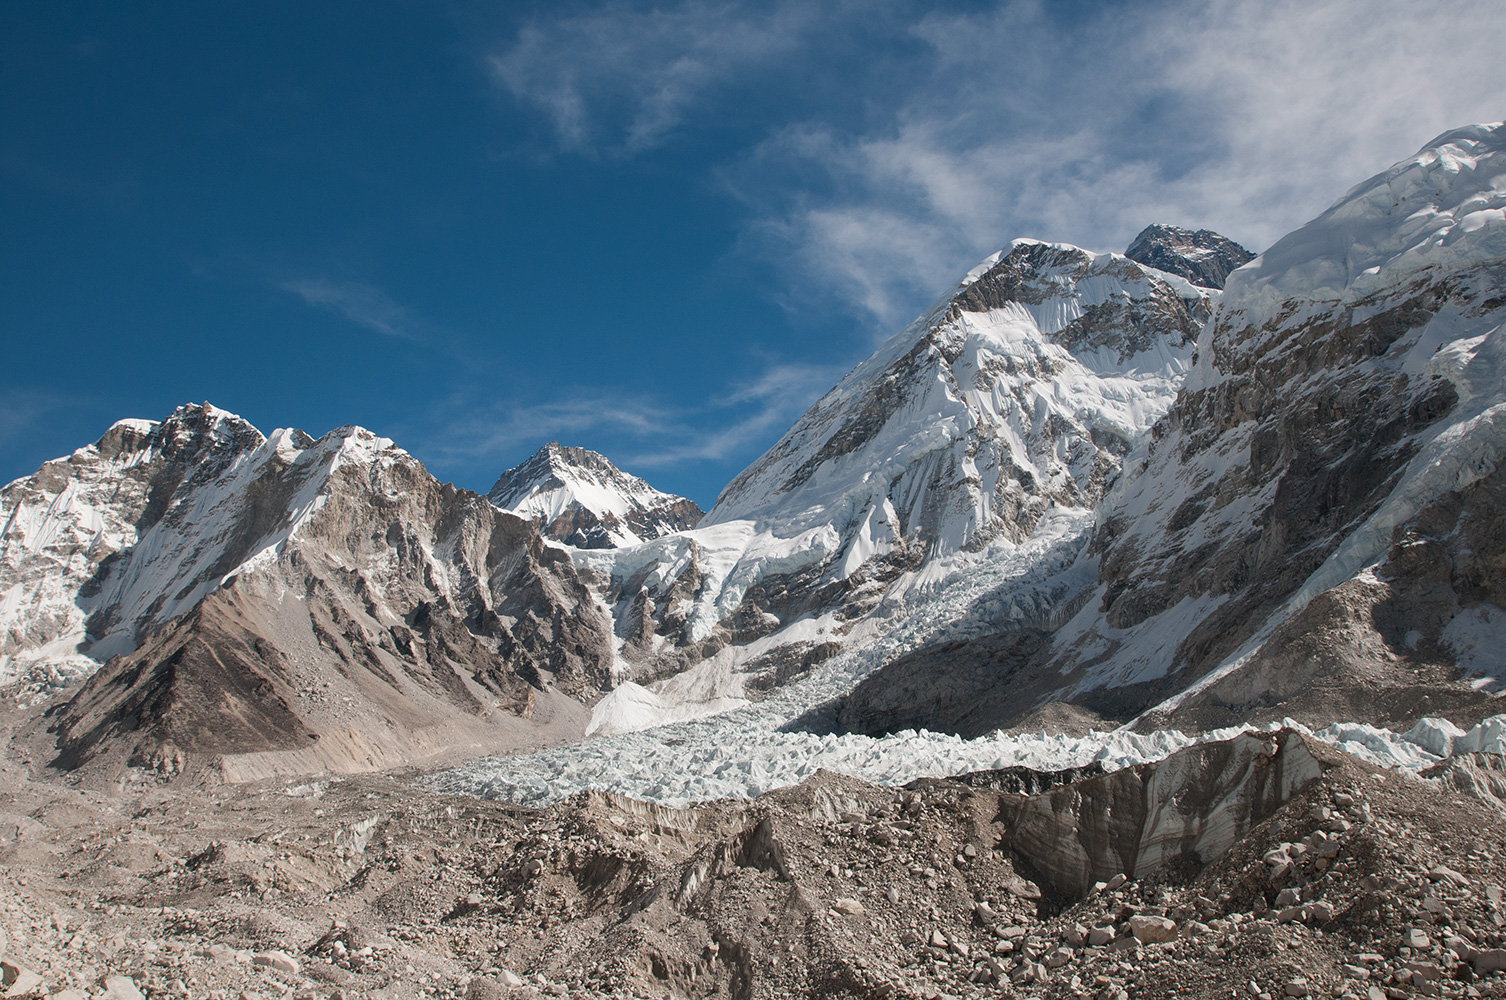 From Everest Base Camp on the Khumbu glacier